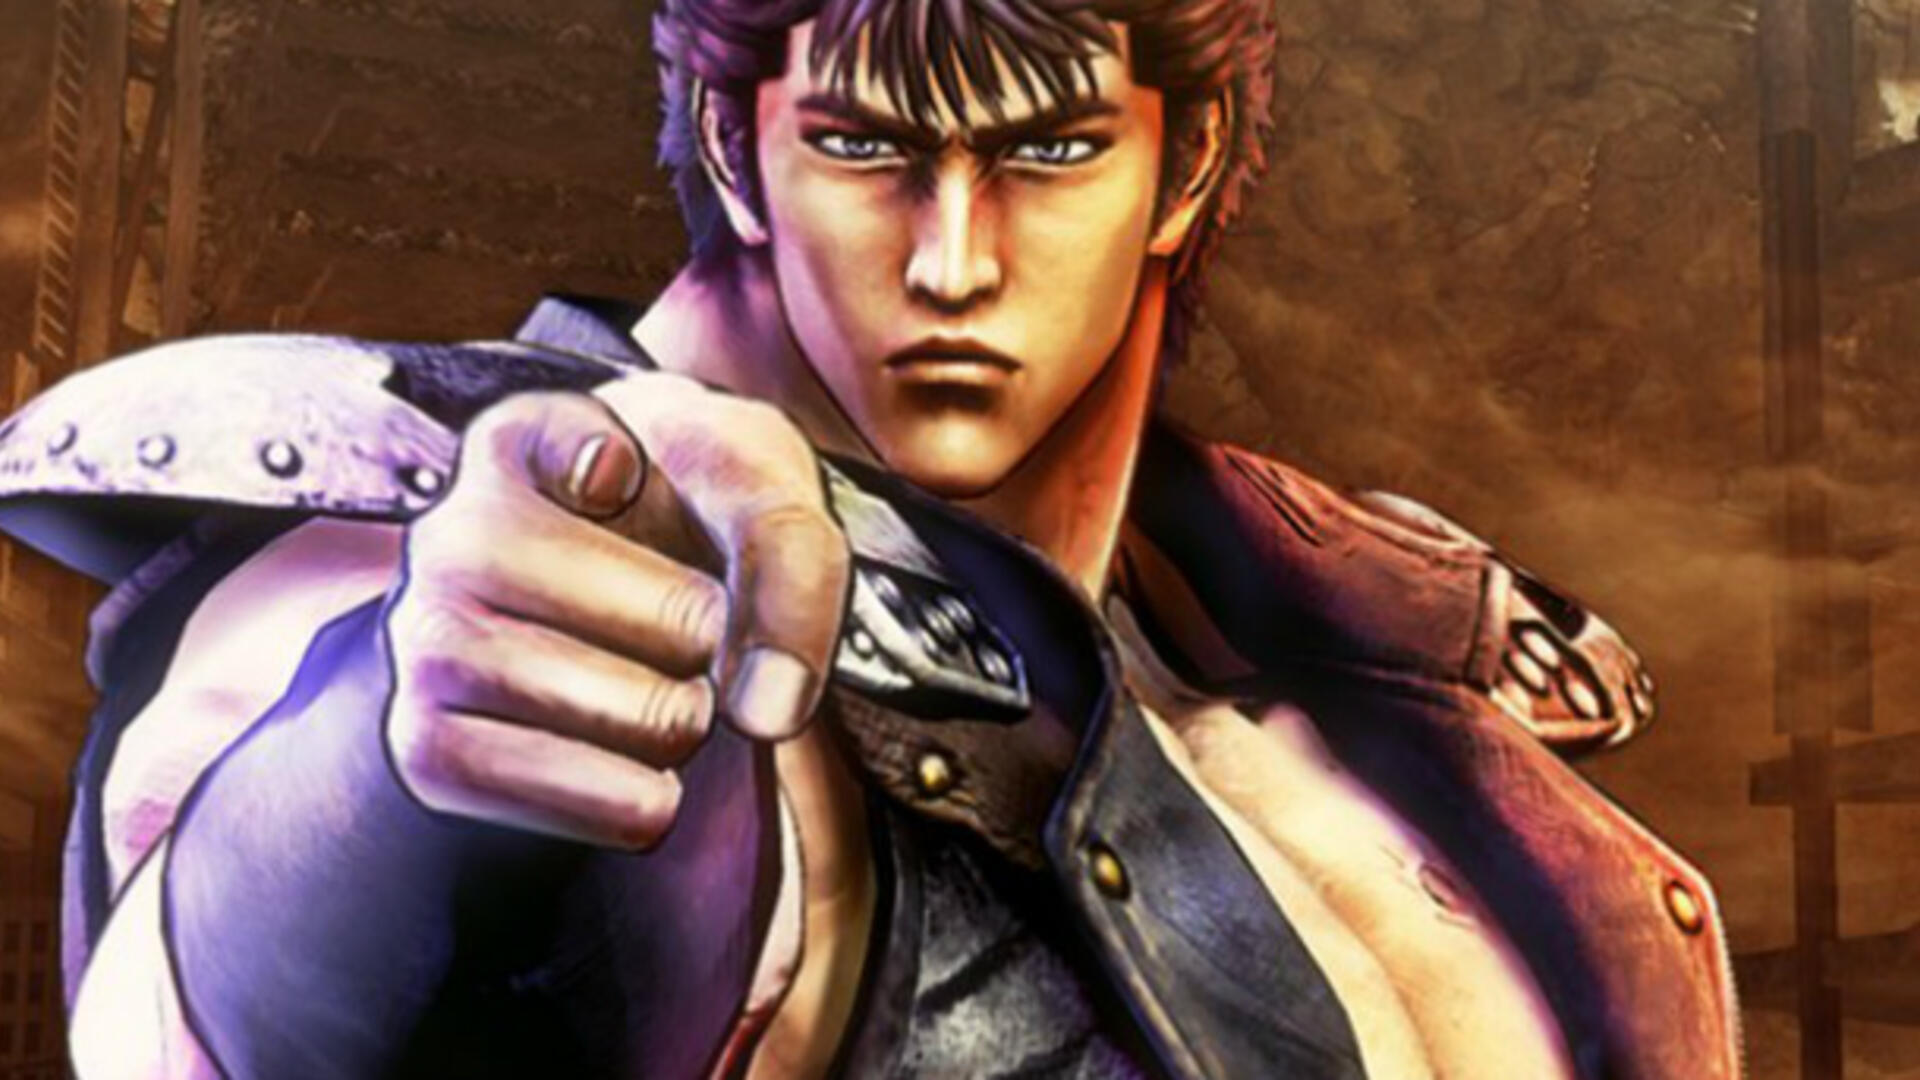 Fist of the North Star: Lost Paradise Producer on Balancing Kenshiro's Power in Gameplay